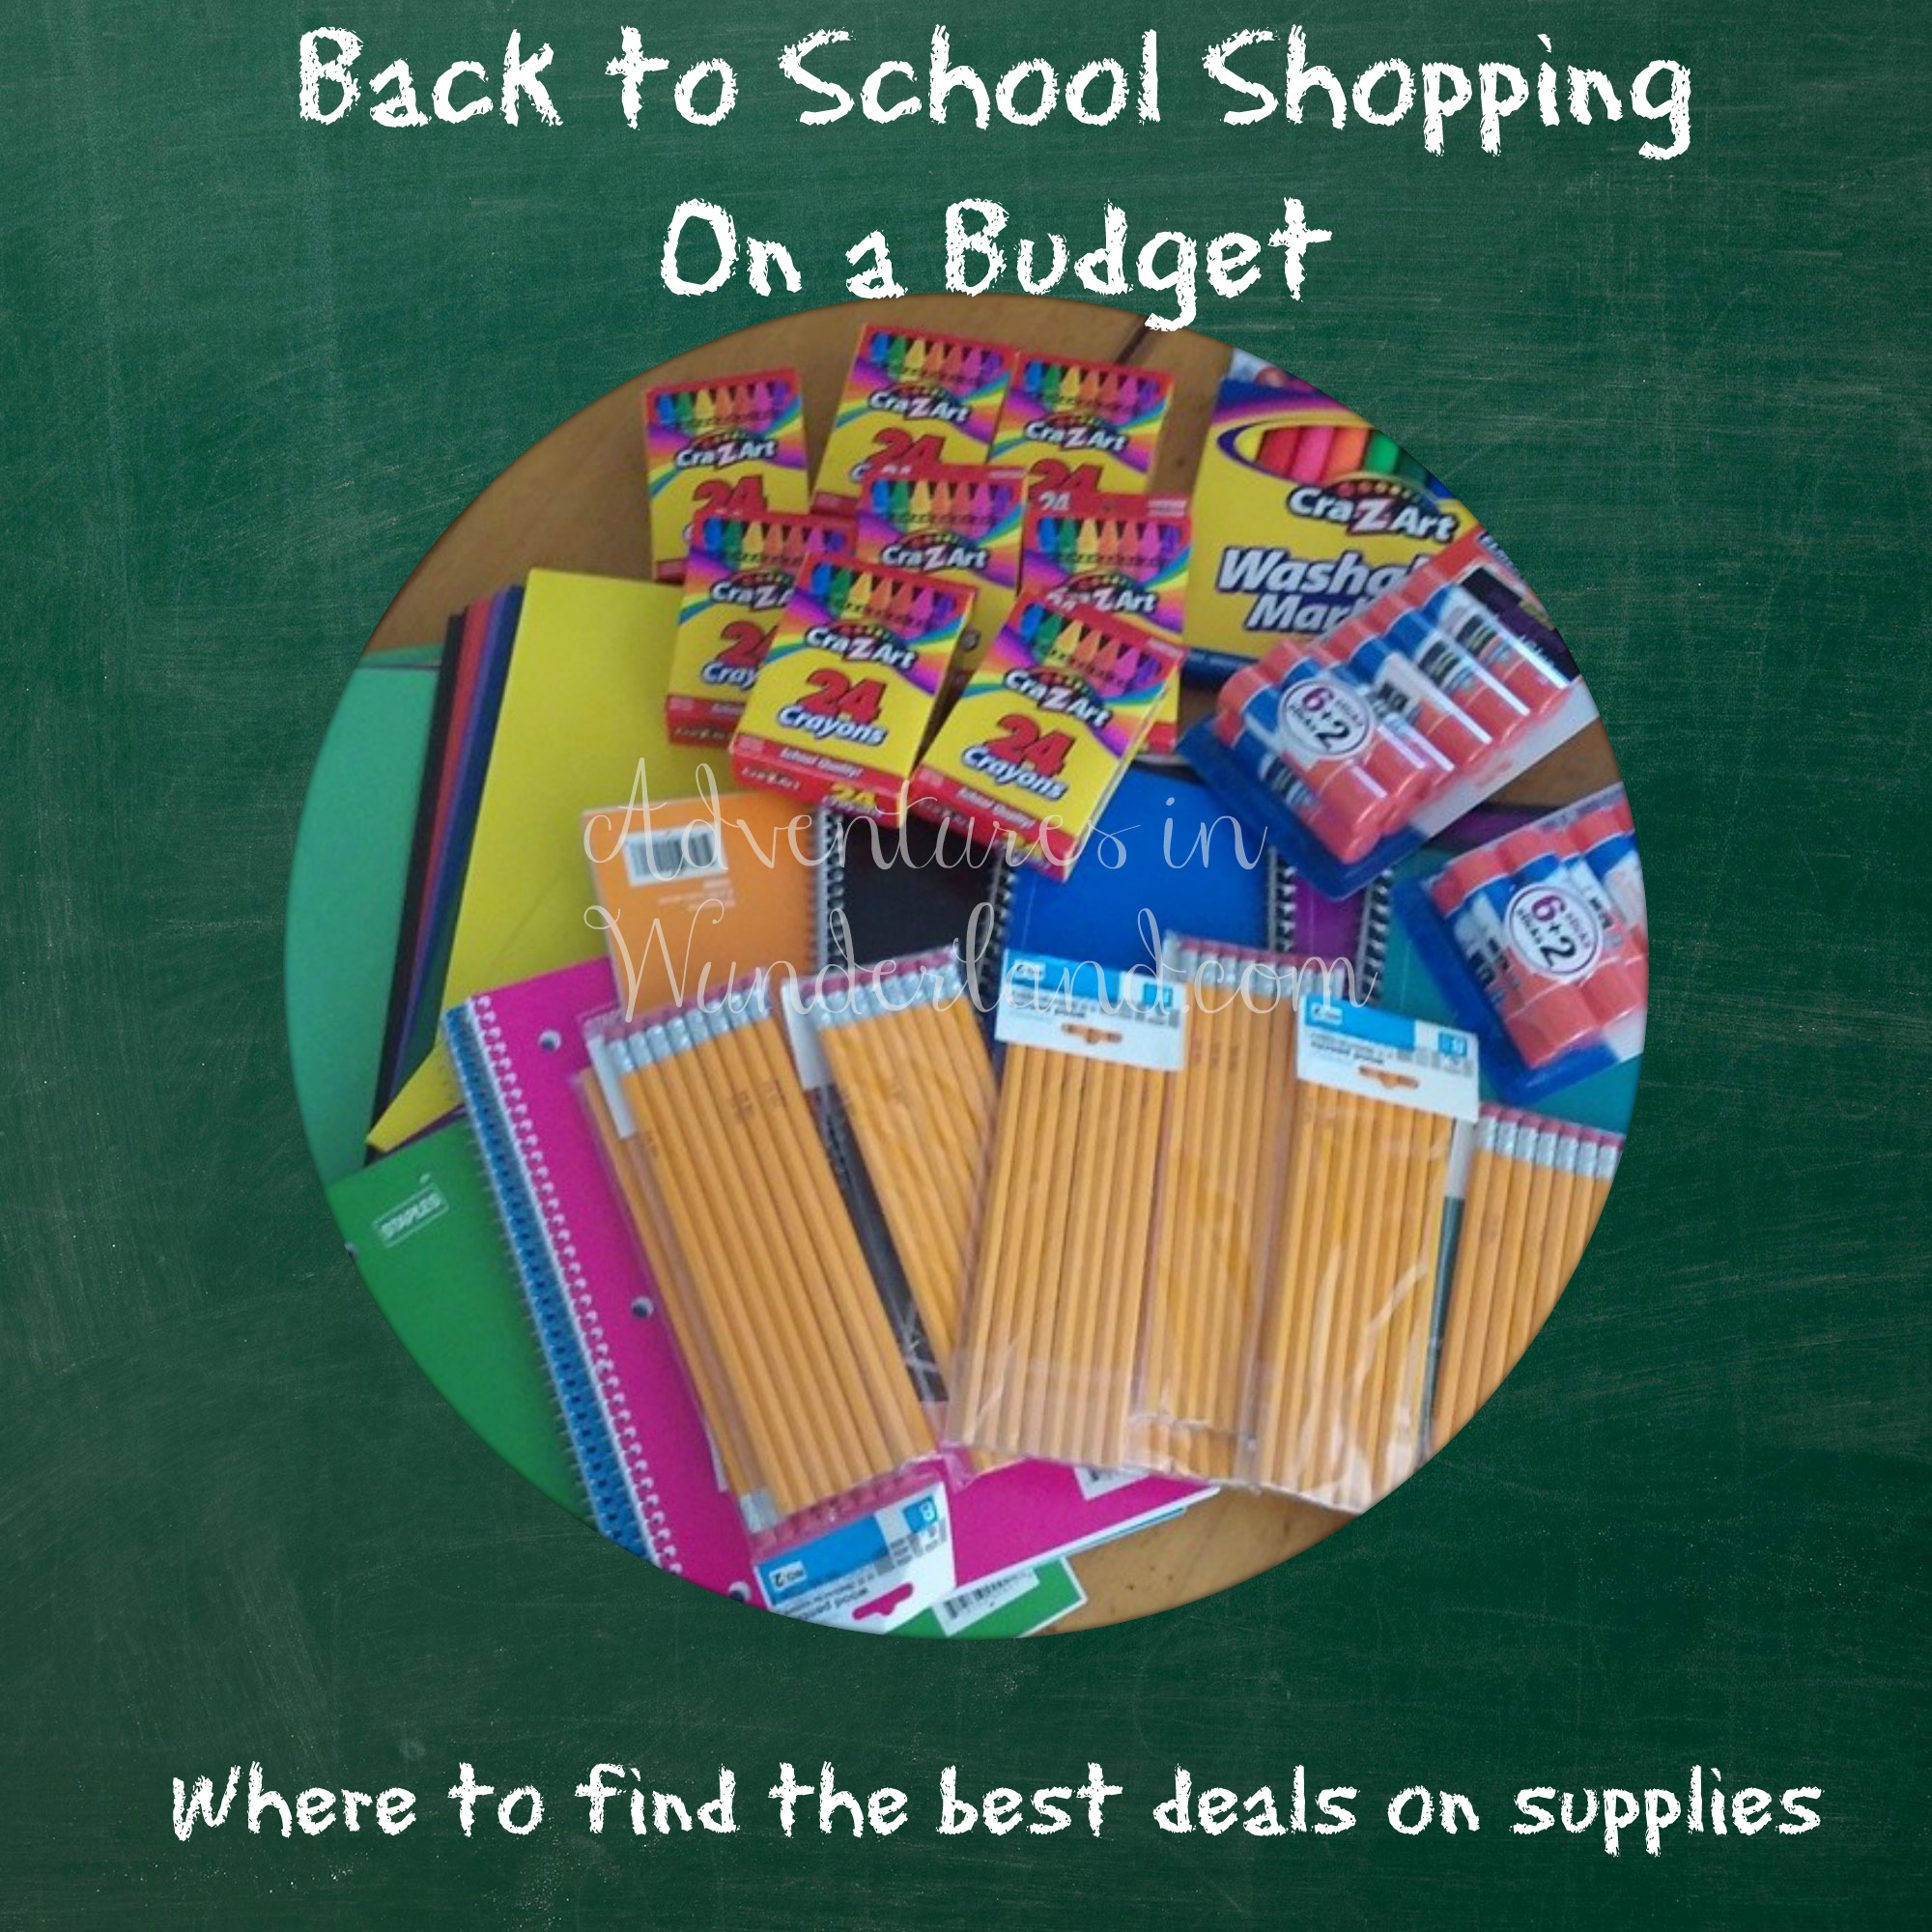 Back to School Shopping on a Budget~Where to find the best deals on supplies